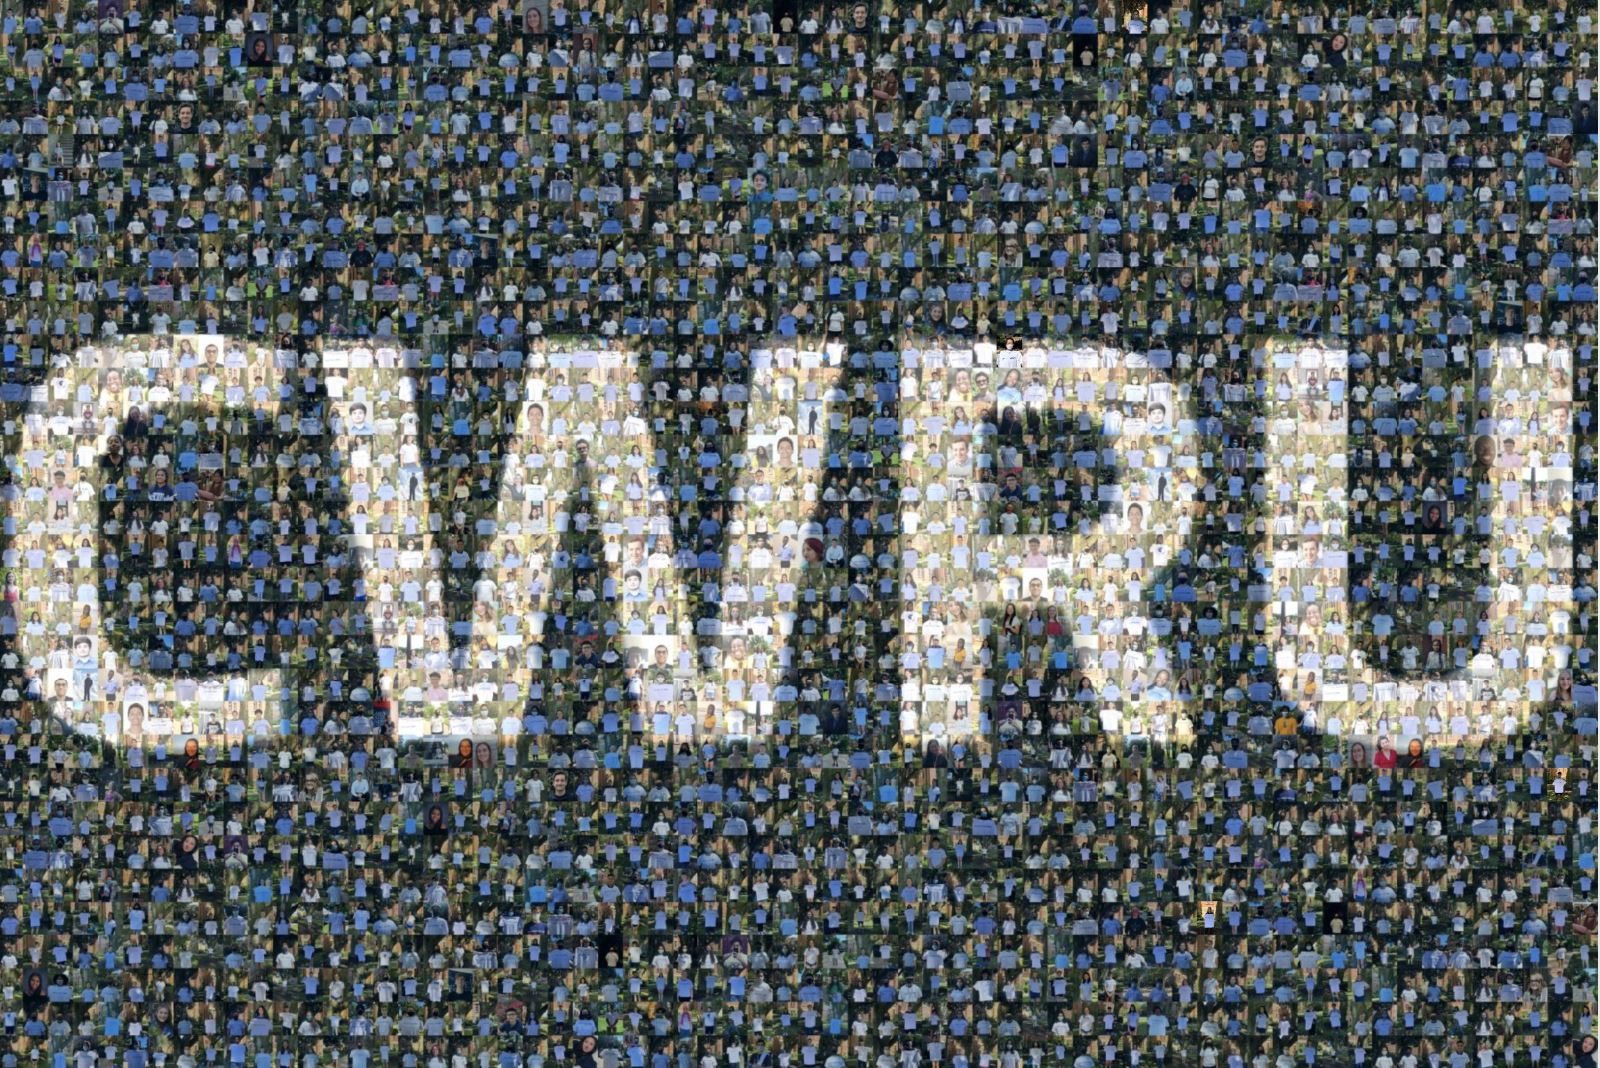 A mosaic of student photos spells out the letters C-W-R-U